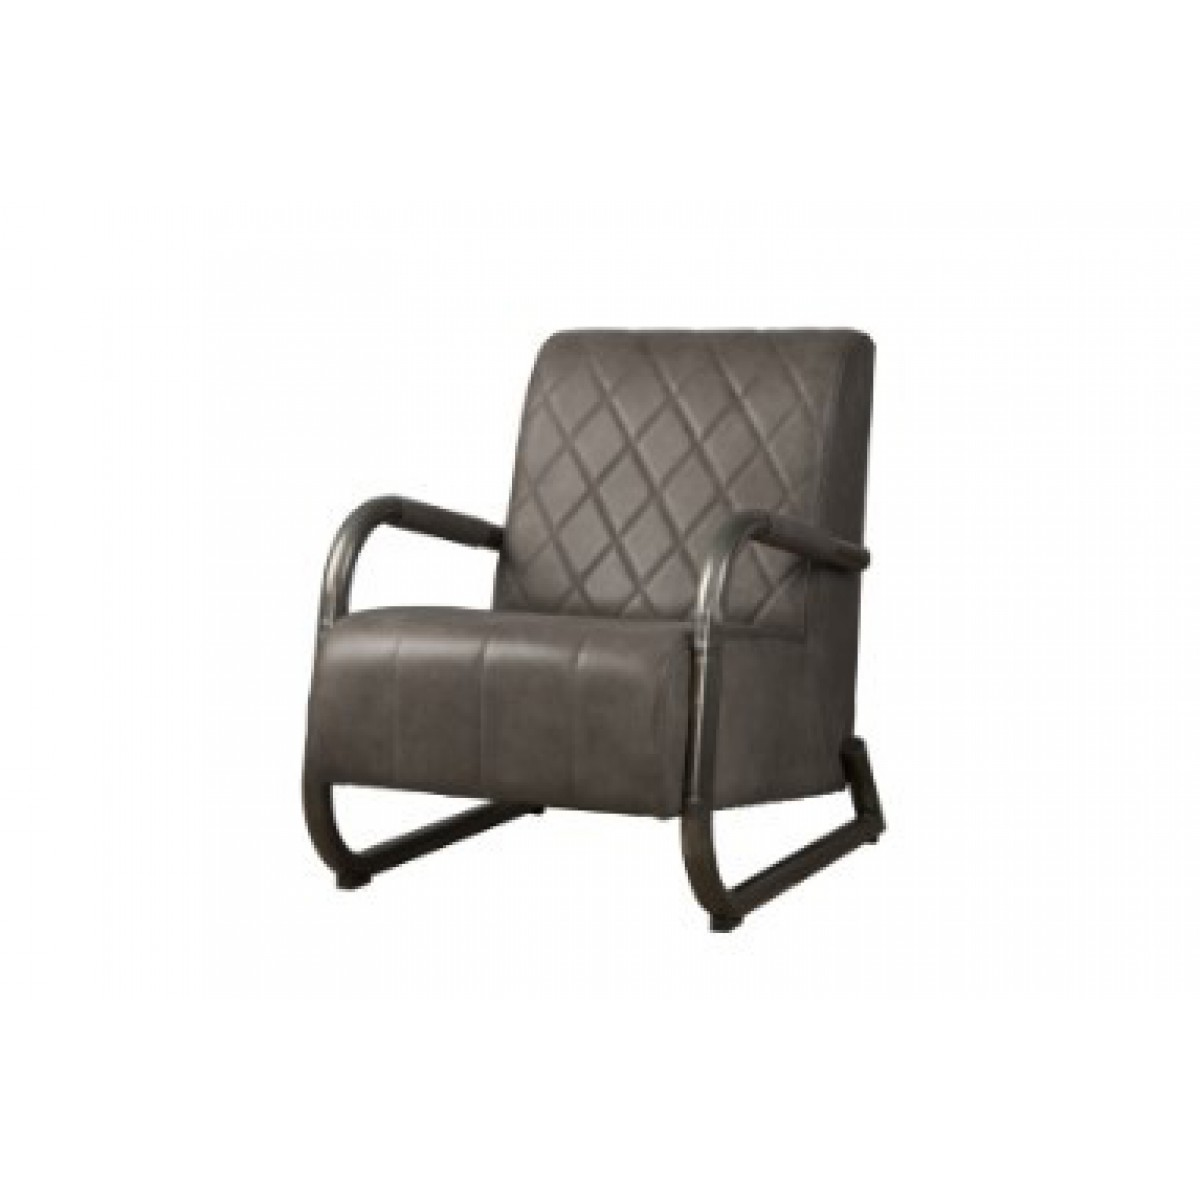 ranch-coffeechair-fauteuil-vintage-leer-stone-lm0013